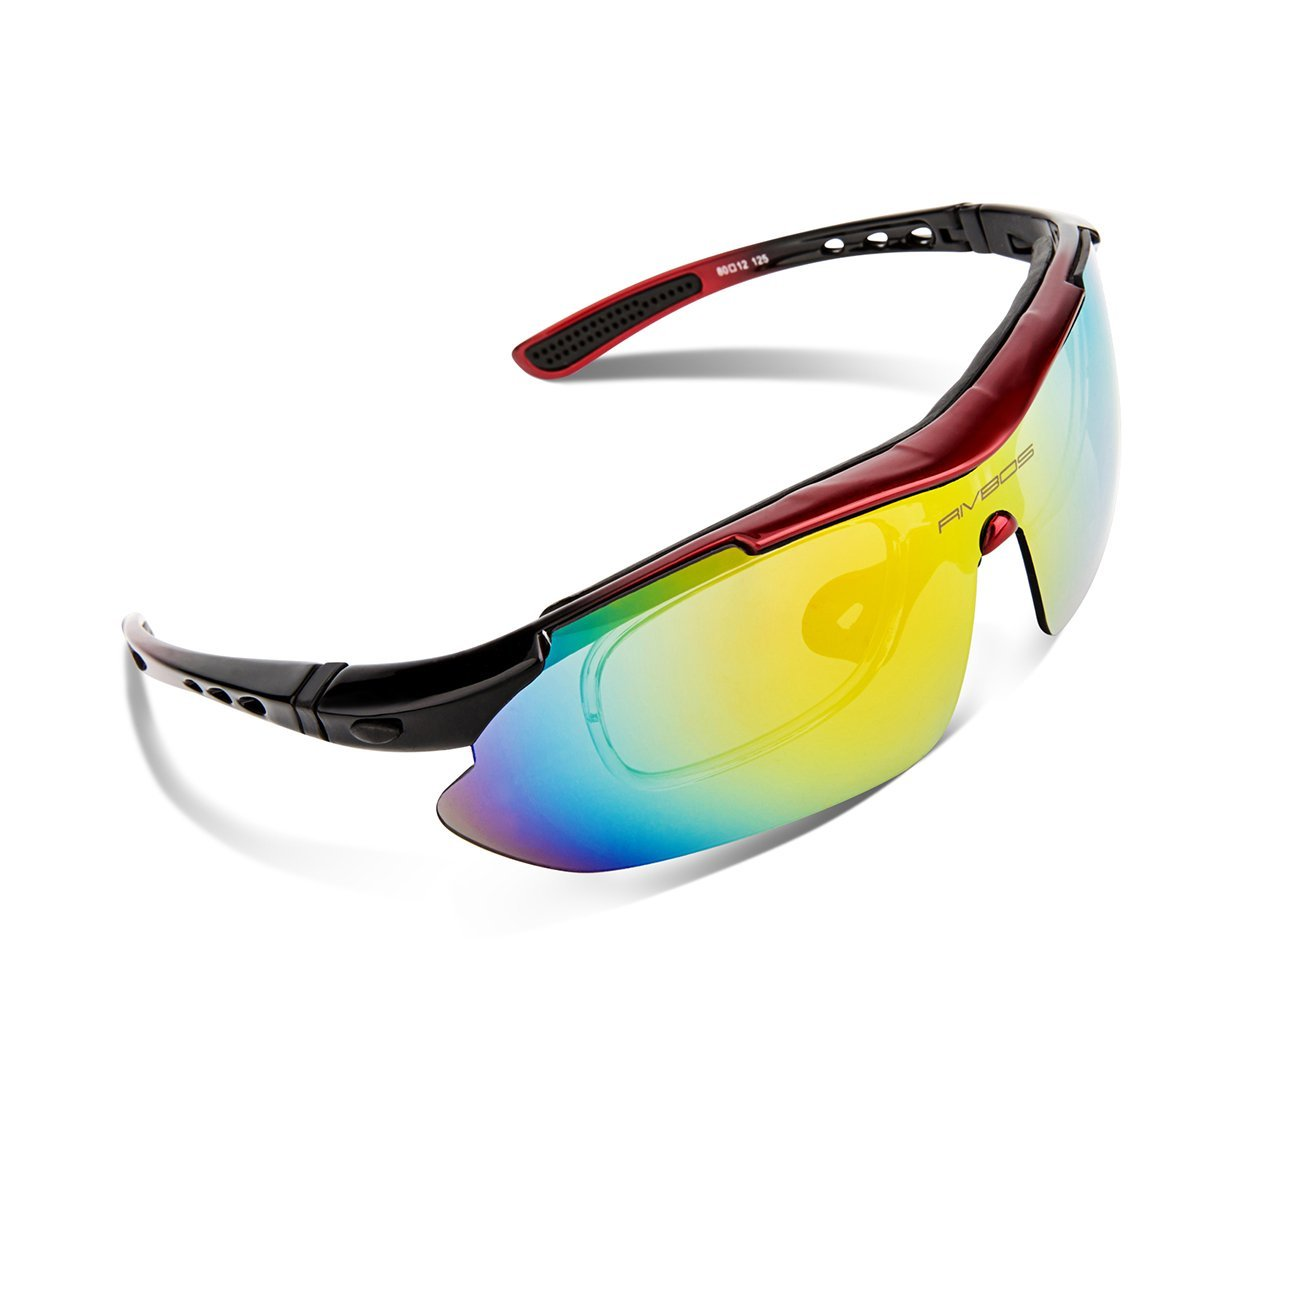 58f6ff9e8e0 RIVBOS 806 POLARIZED Sports Sunglasses with 5 Set Interchangeable Lenses  for Cycling